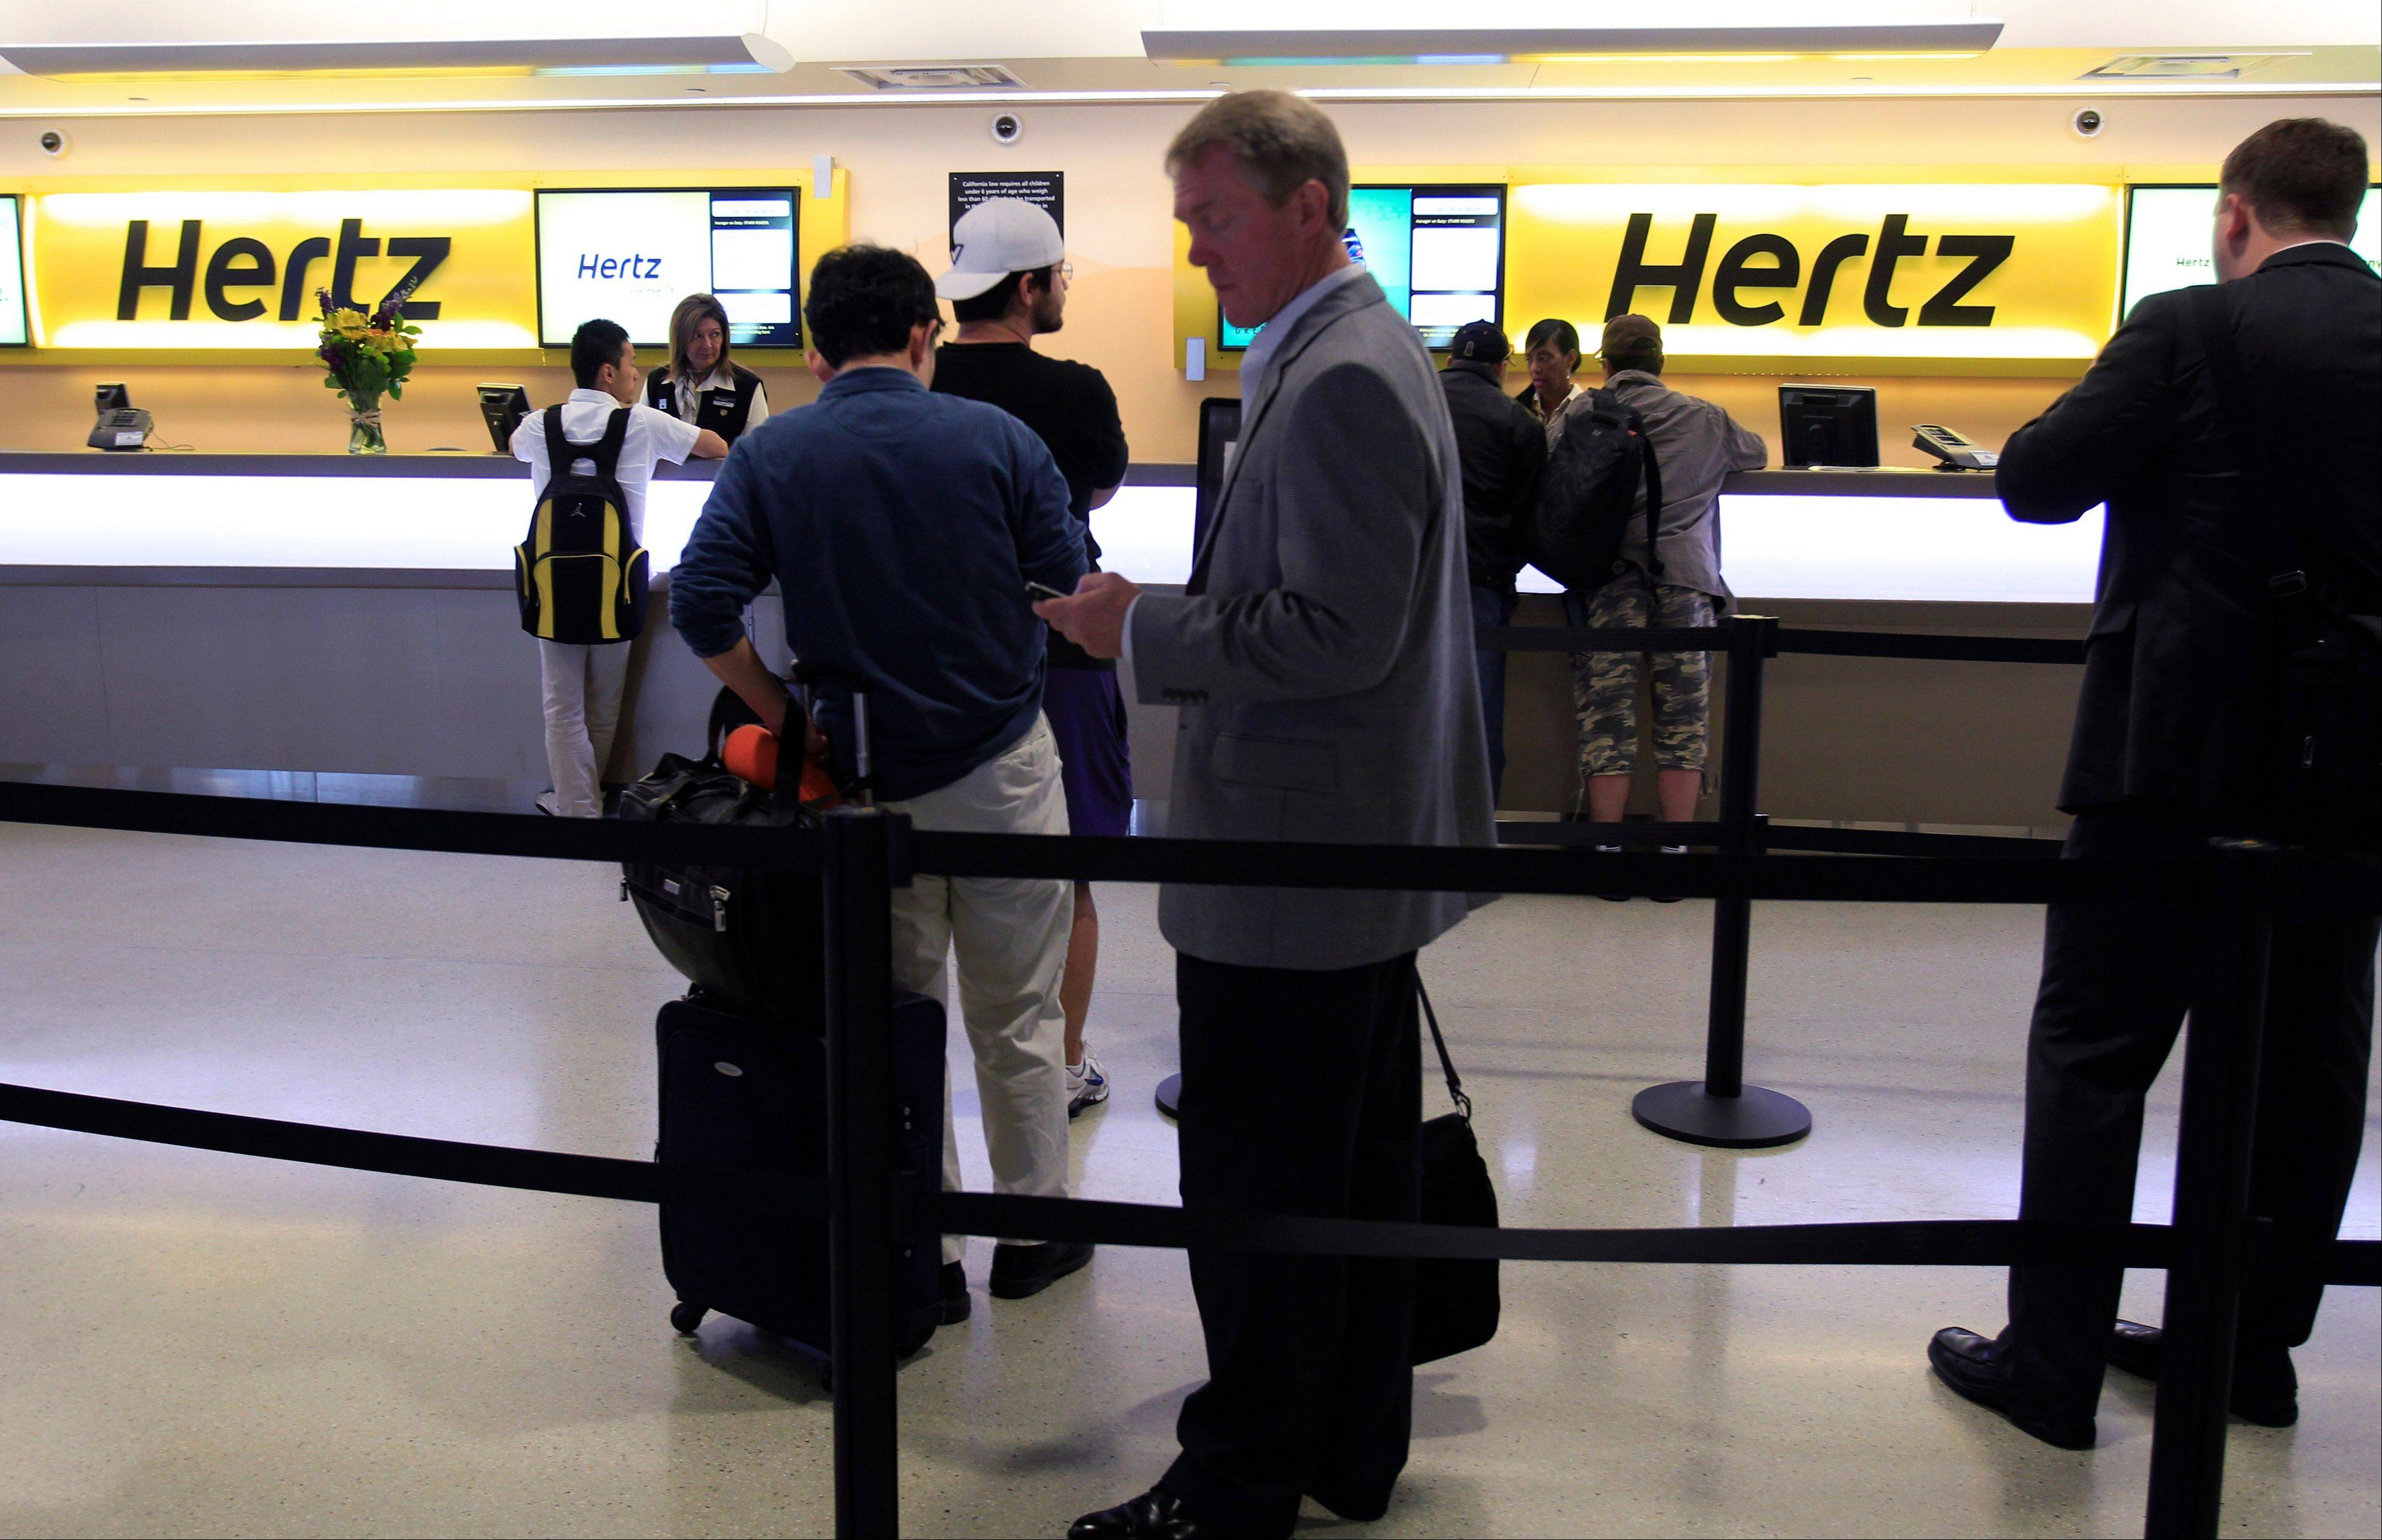 Customers wait in line at a Hertz rental car counter at San Jose International Airport in San Jose, Calif. Car rental agencies sometimes don't have enough cars to meet the demand.